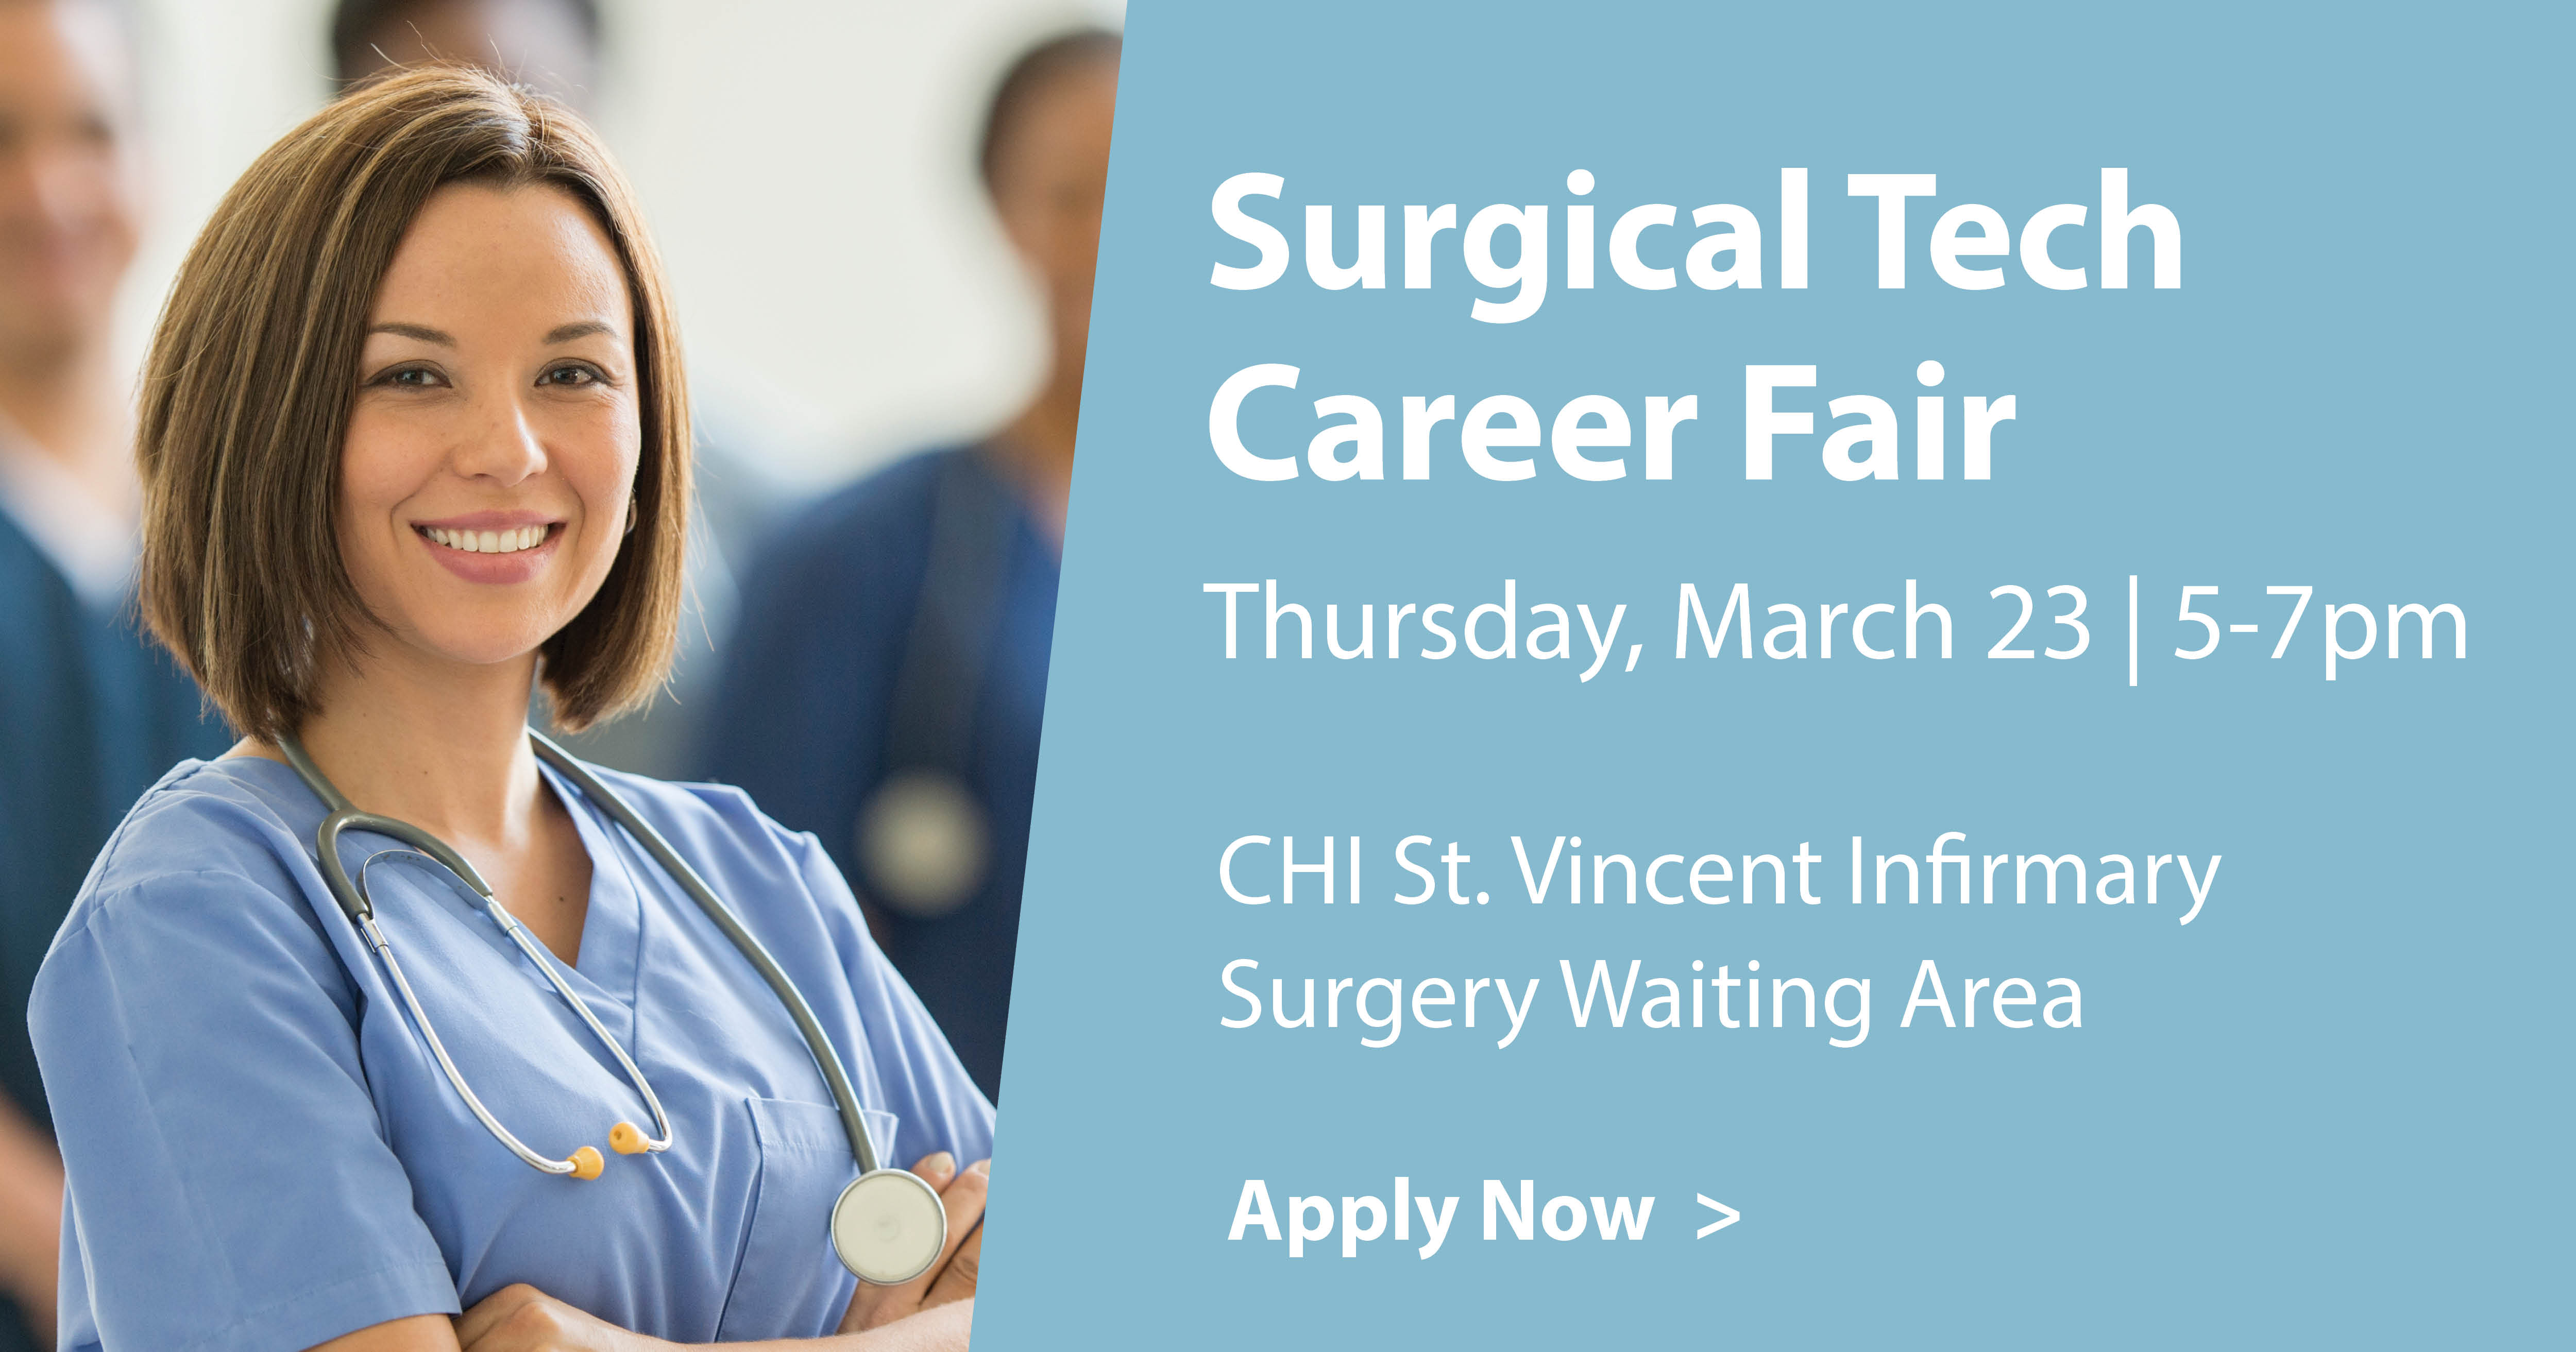 Surgical Tech Career Fair